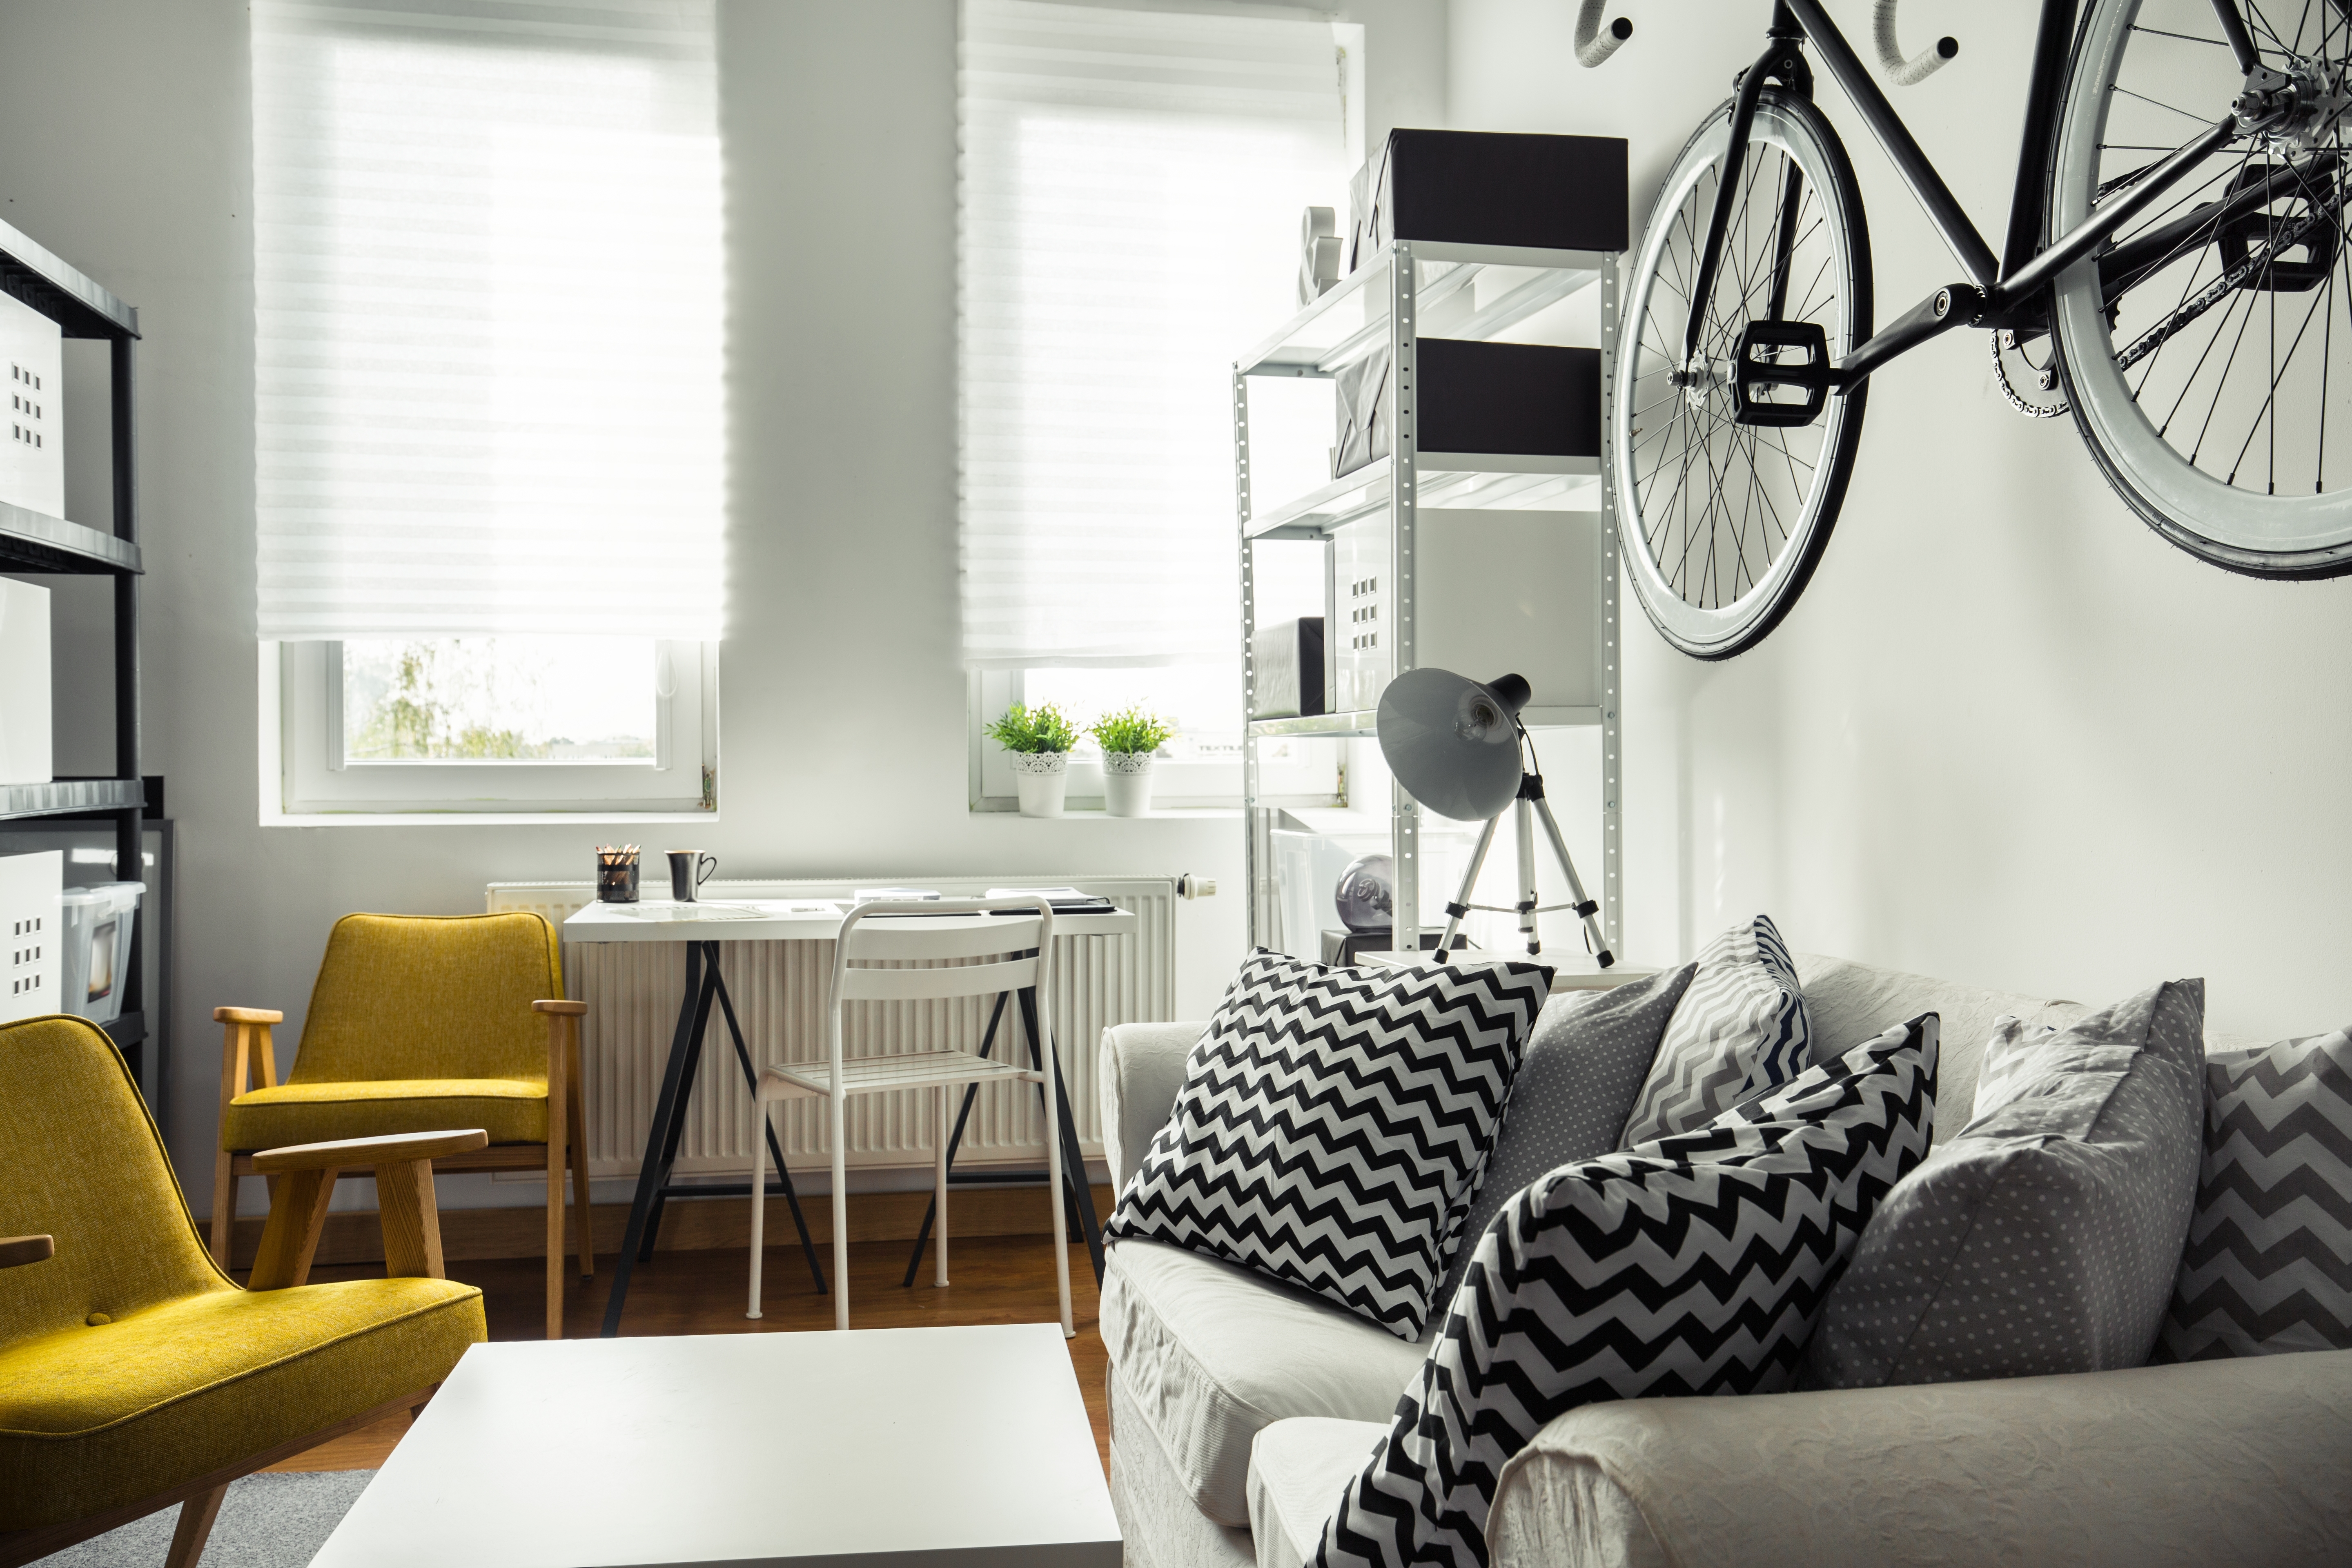 Make A Small Condo Feel Bigger Design Ideas Builddirectbuilddirect Blog Life At Home